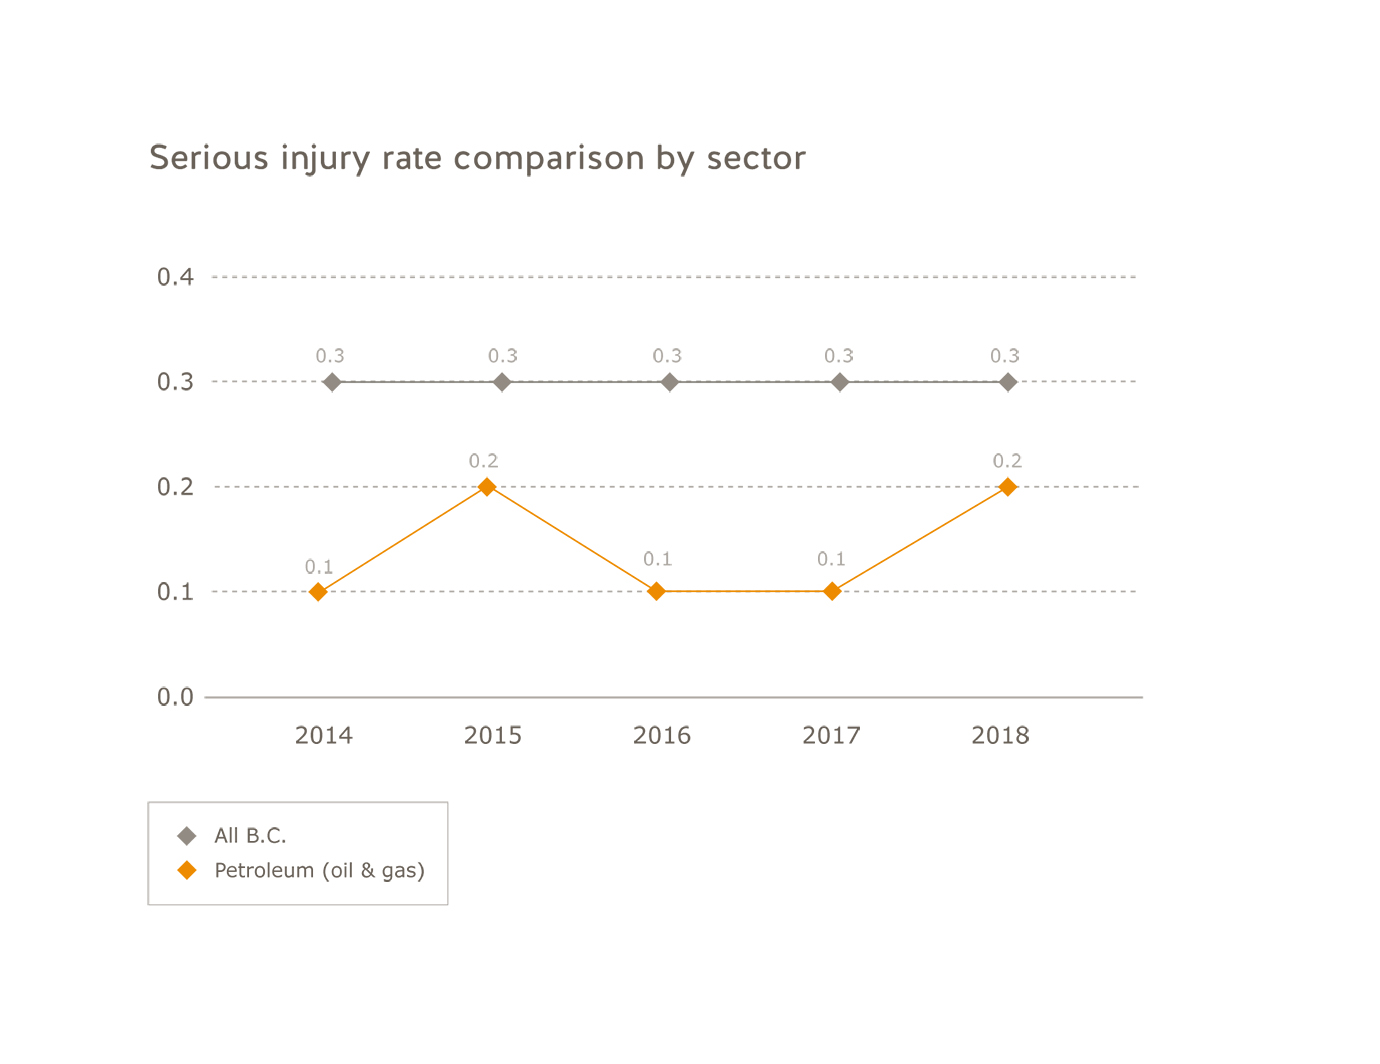 Oil  and gas industry serious injury rate comparison by sector for 2014 to 2018. All B.C.: 2014=0.3; 2015=0.3; 2016=0.3; 2017=0.3; 2018=0.3. Oil and gas: 2014=0.1; 2015=0.2; 2016=0.1; 2017=0.1; 2018=0.2